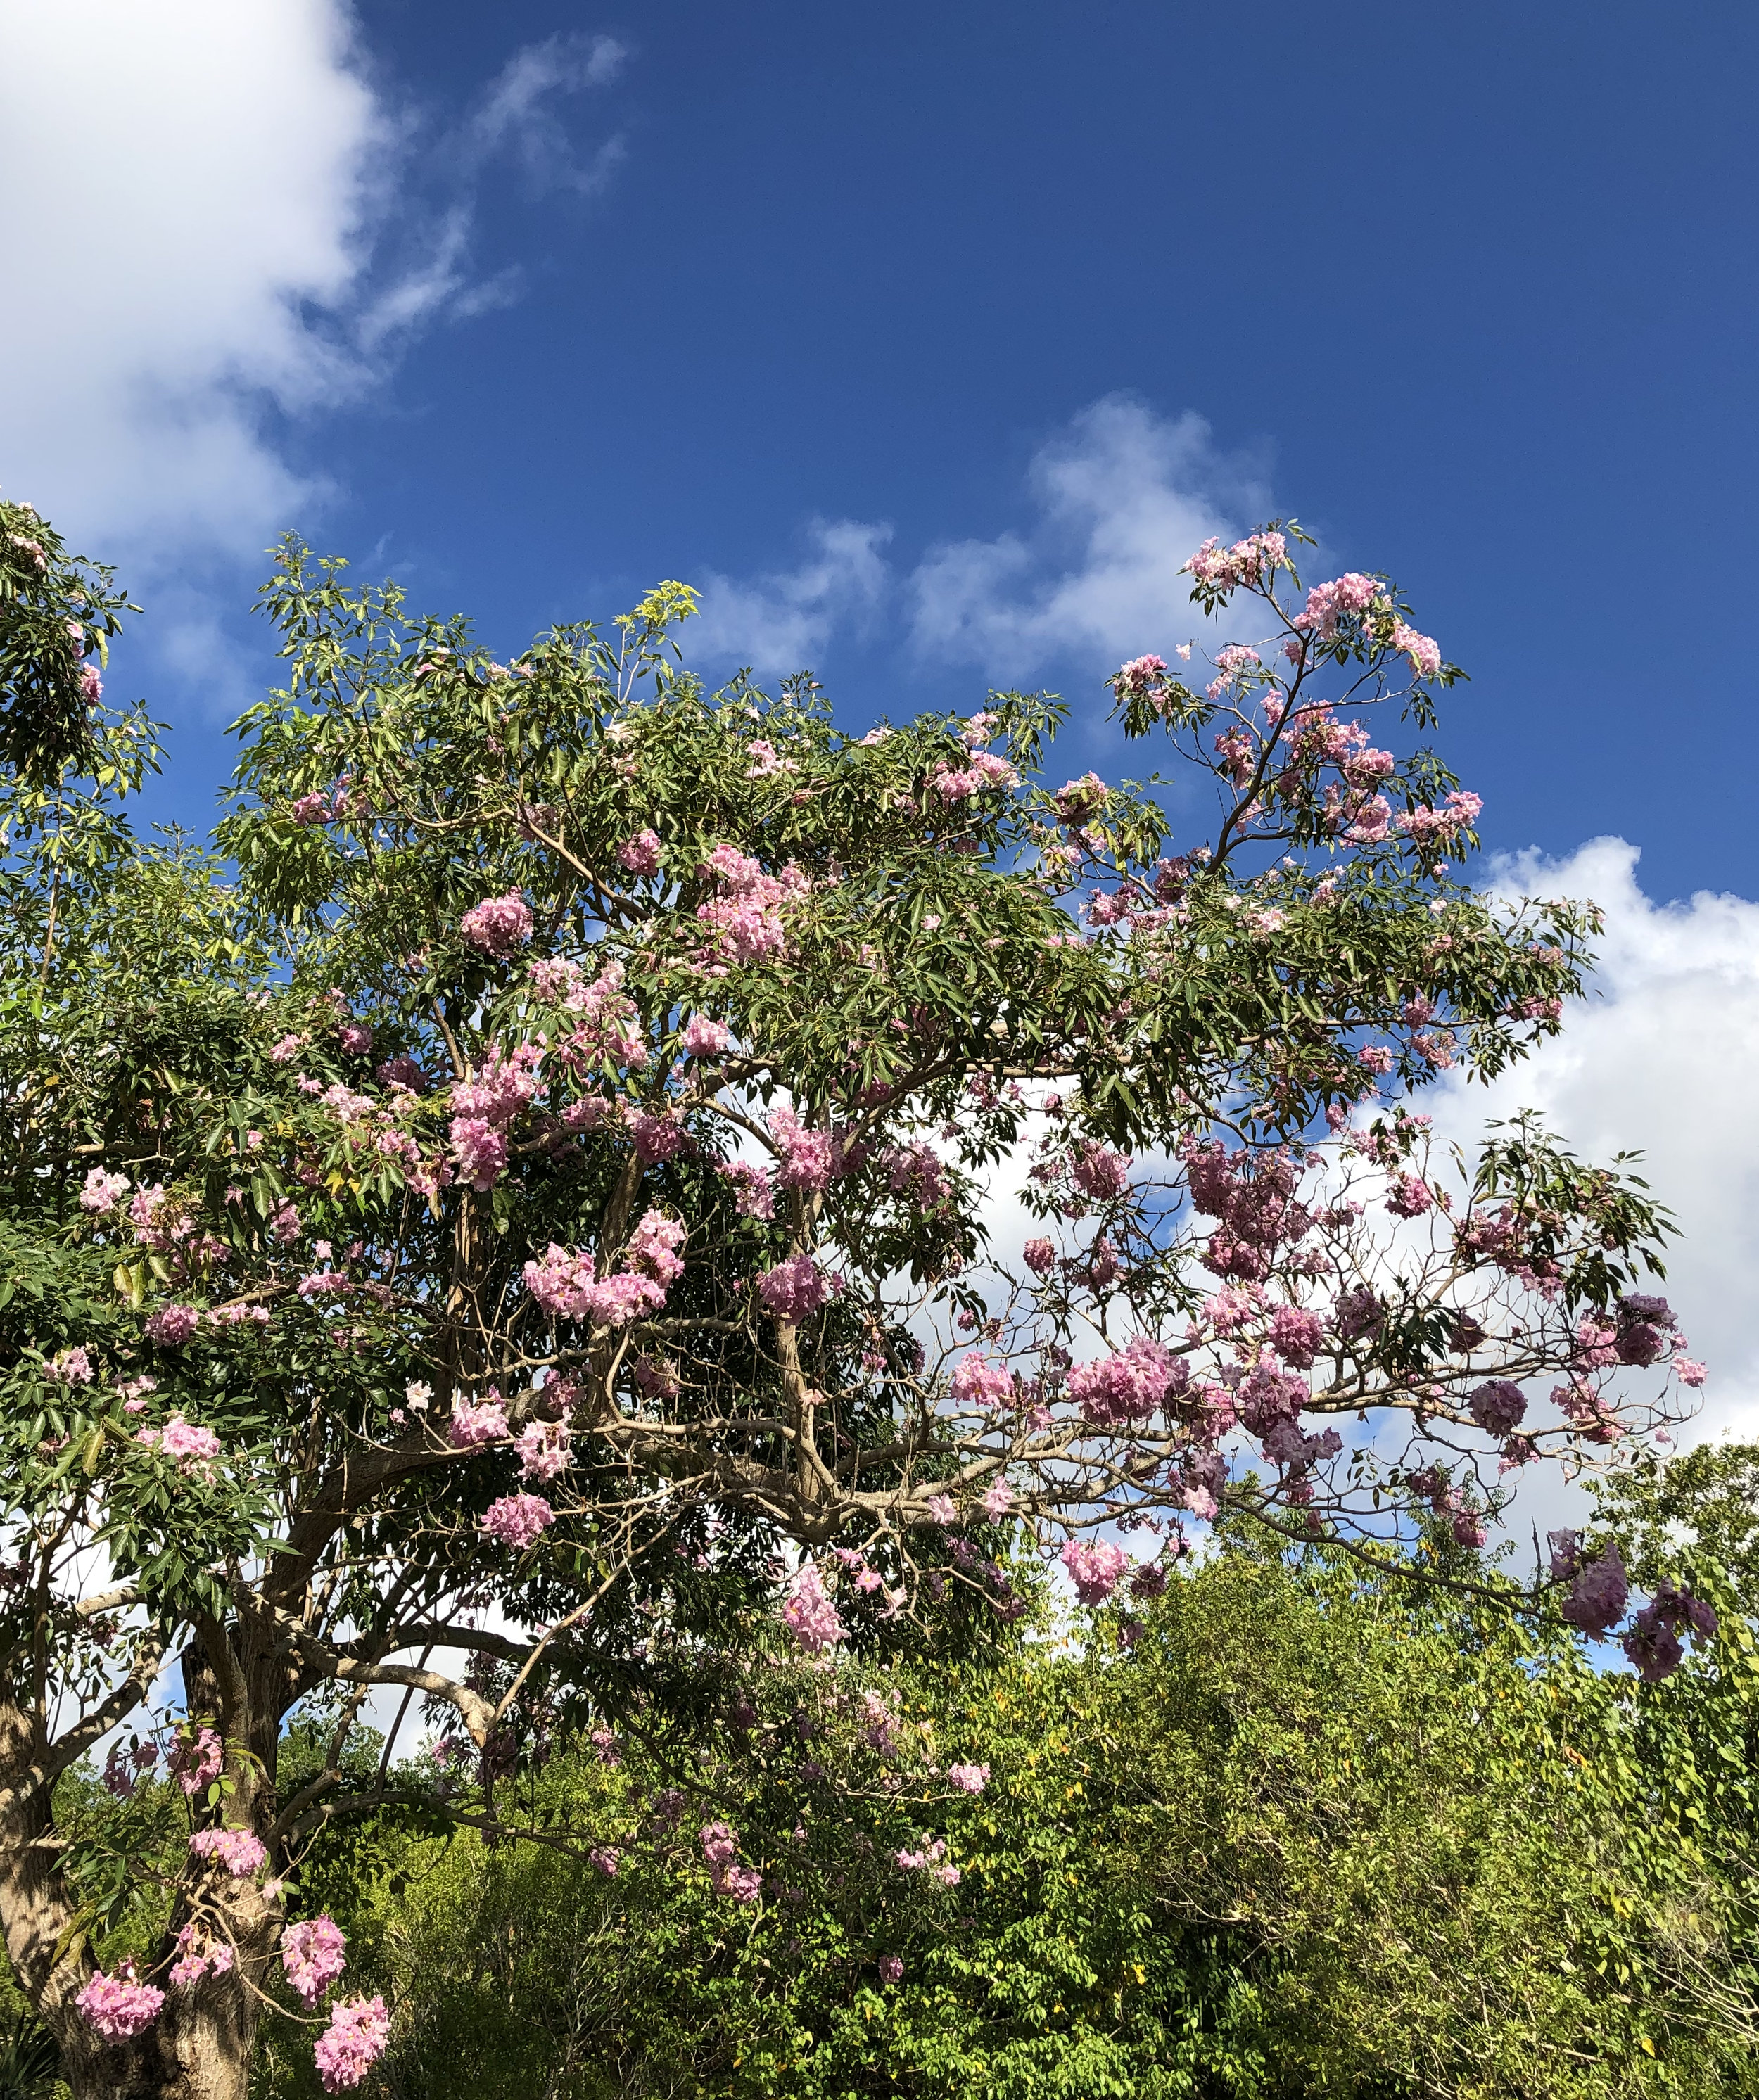 Tabebuia rosea  The rosy trumpet tree, often planted in Neotropical cities.